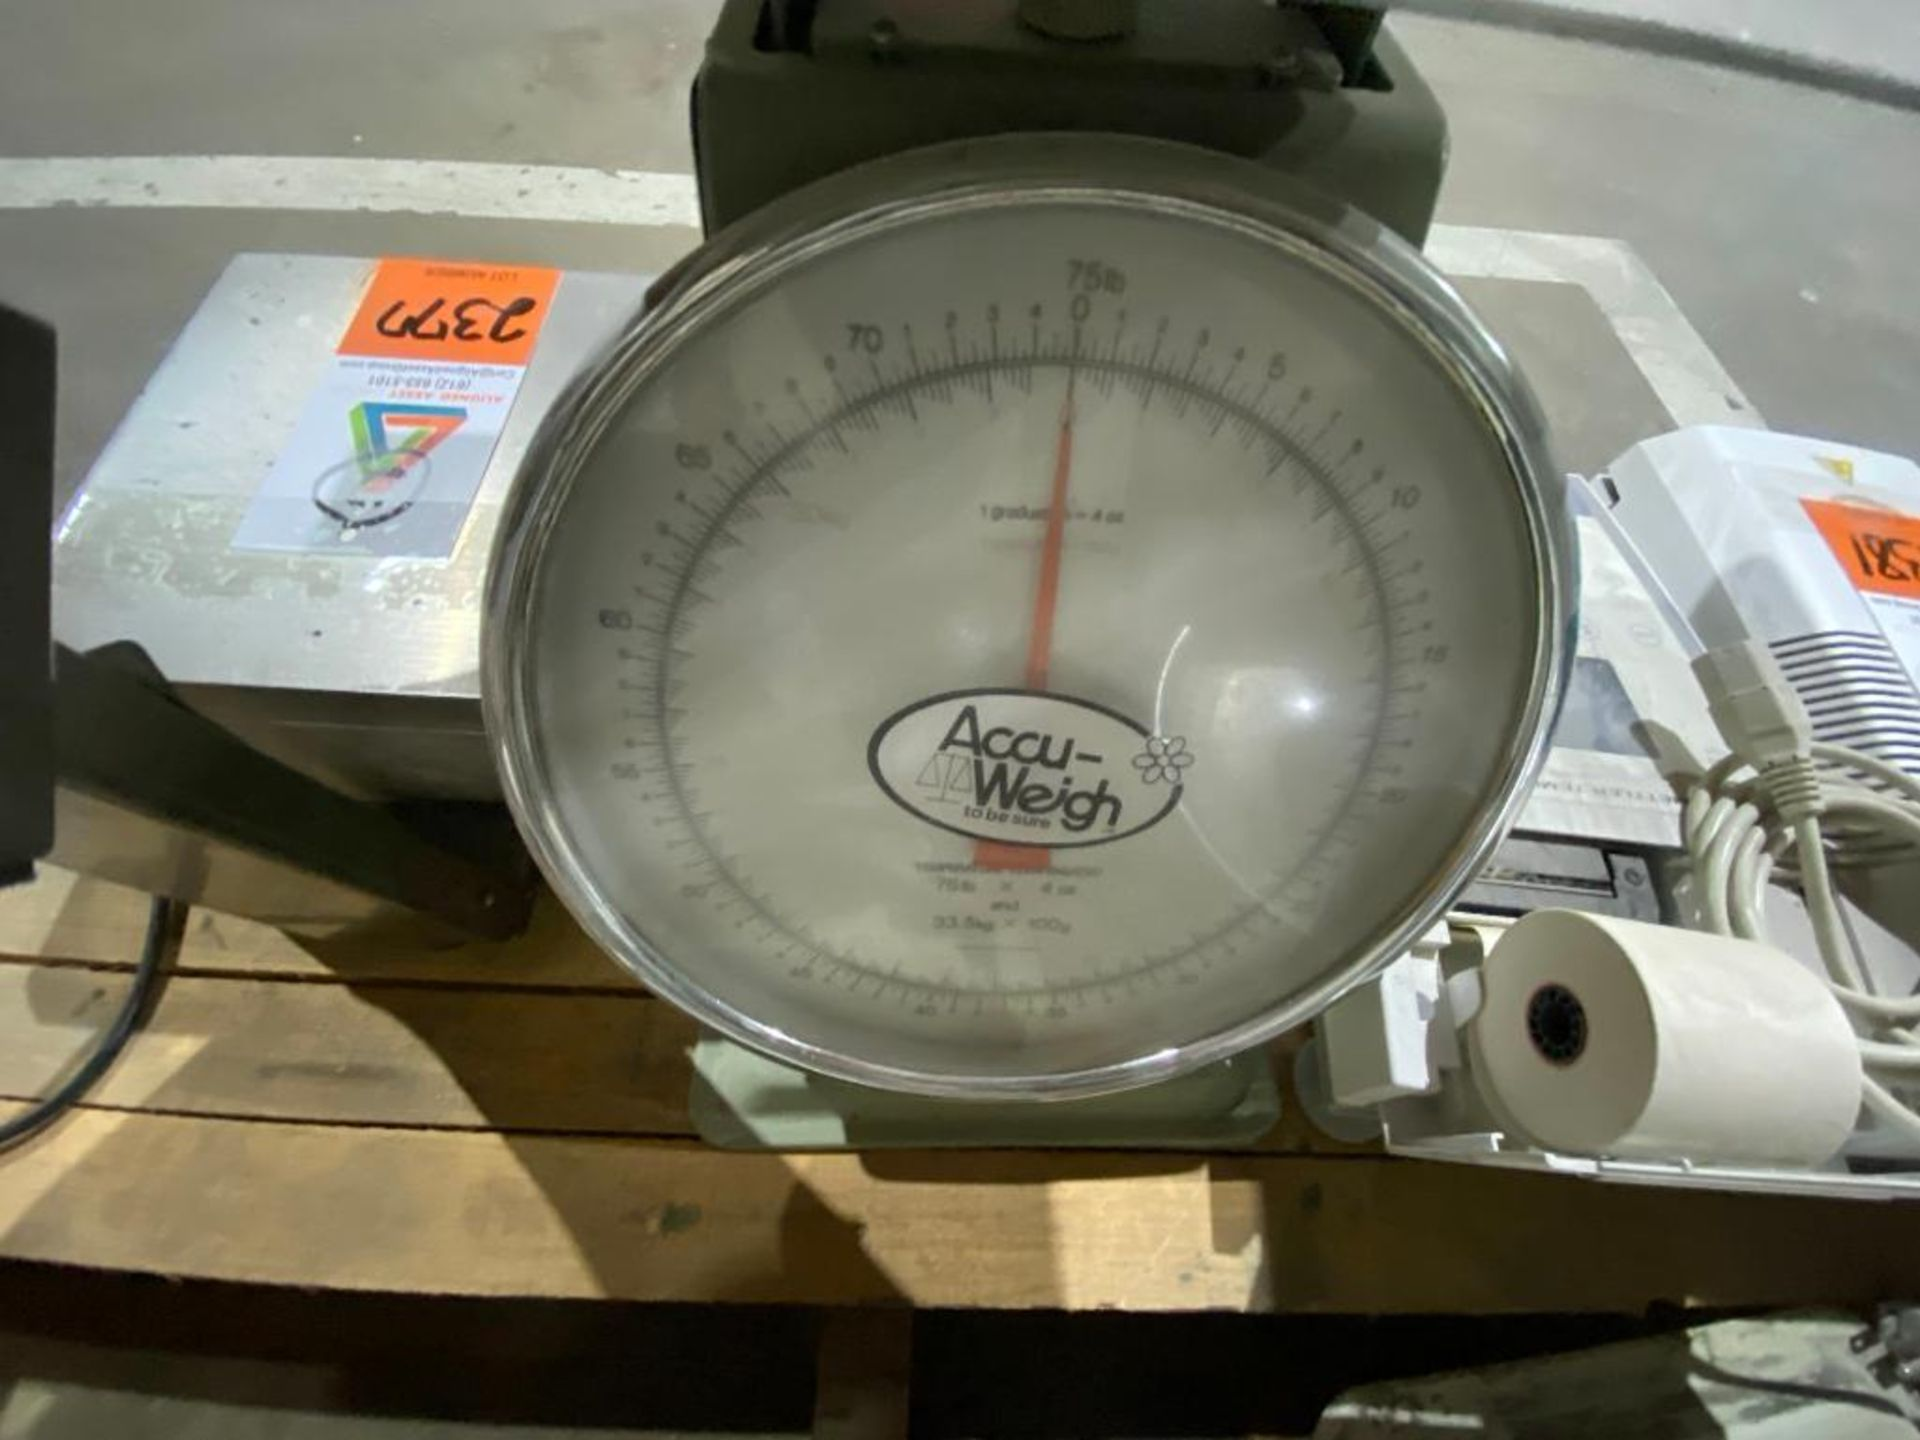 Mettler Toledo digital scale and Accu-Weigh manual scale - Image 4 of 5